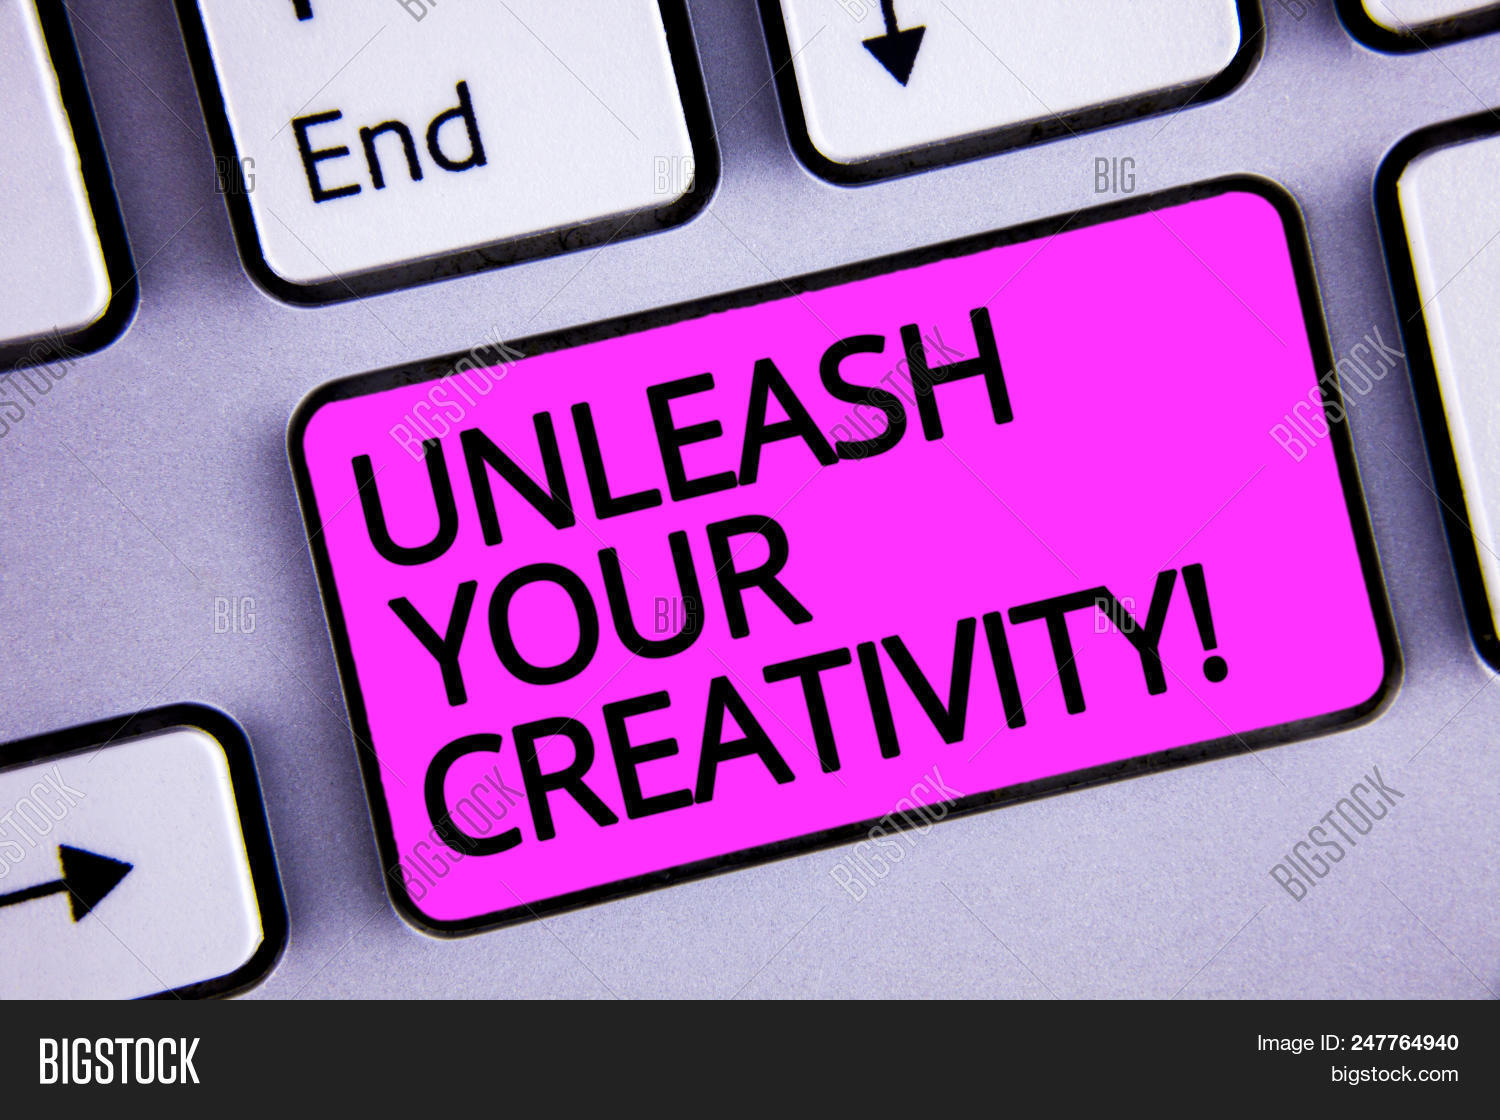 ability,aspiration,brain,brainstorming,cognition,concept,creativity,development,discover,efficiency,expression,flair,idea,imagination,improvement,ingenuity,initiative,innovation,insight,inspiration,intelligence,inventiveness,knowledge,mind,opportunity,originality,perceptibility,personal,potential,professional,proficiency,realization,release,resourcefulness,skill,stimulation,strategy,supposition,talent,think,thoughts,unleash,unlock,vision,wisdom,wittiness